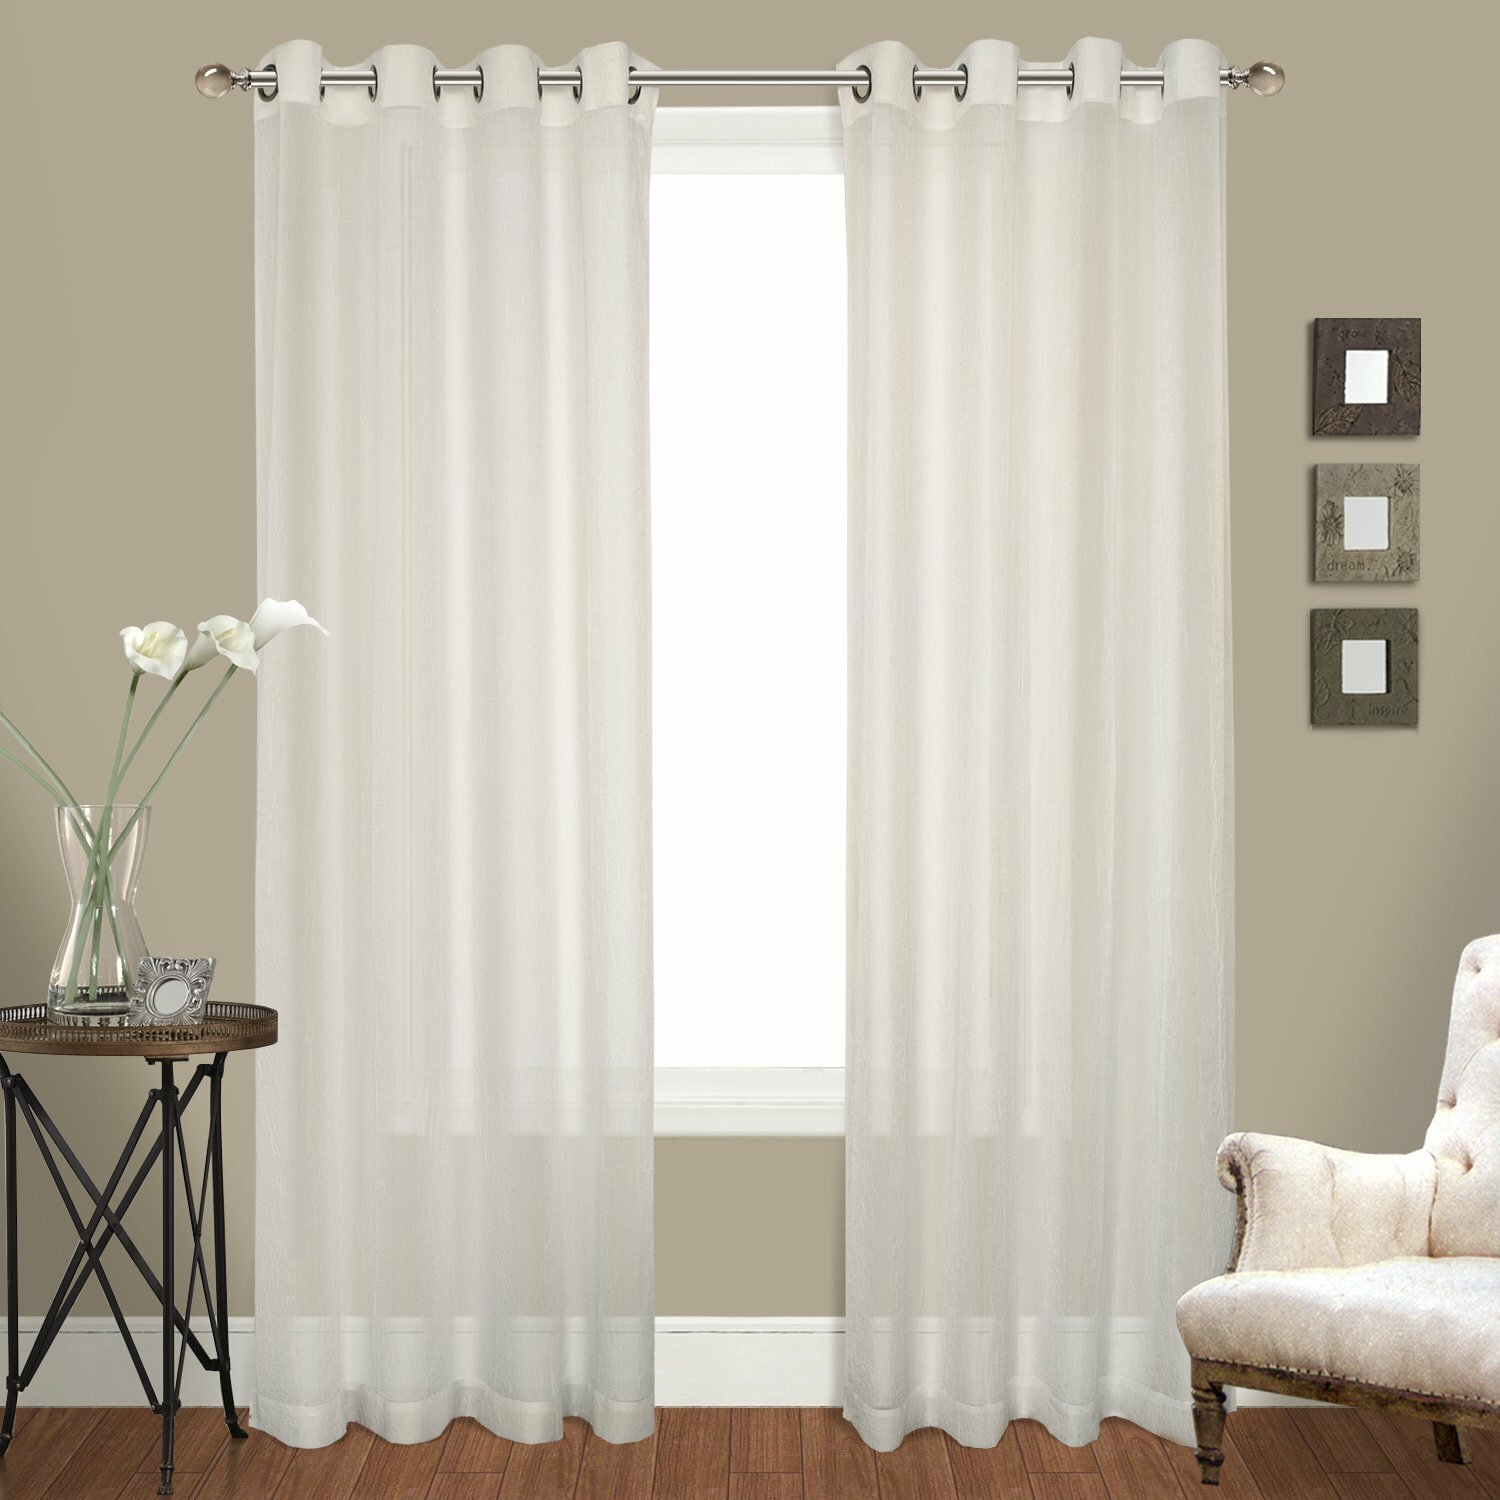 Ortley Crushed Voile Solid Sheer Grommet Curtain Panel Pair Regarding Solid Grommet Top Curtain Panel Pairs (View 22 of 30)